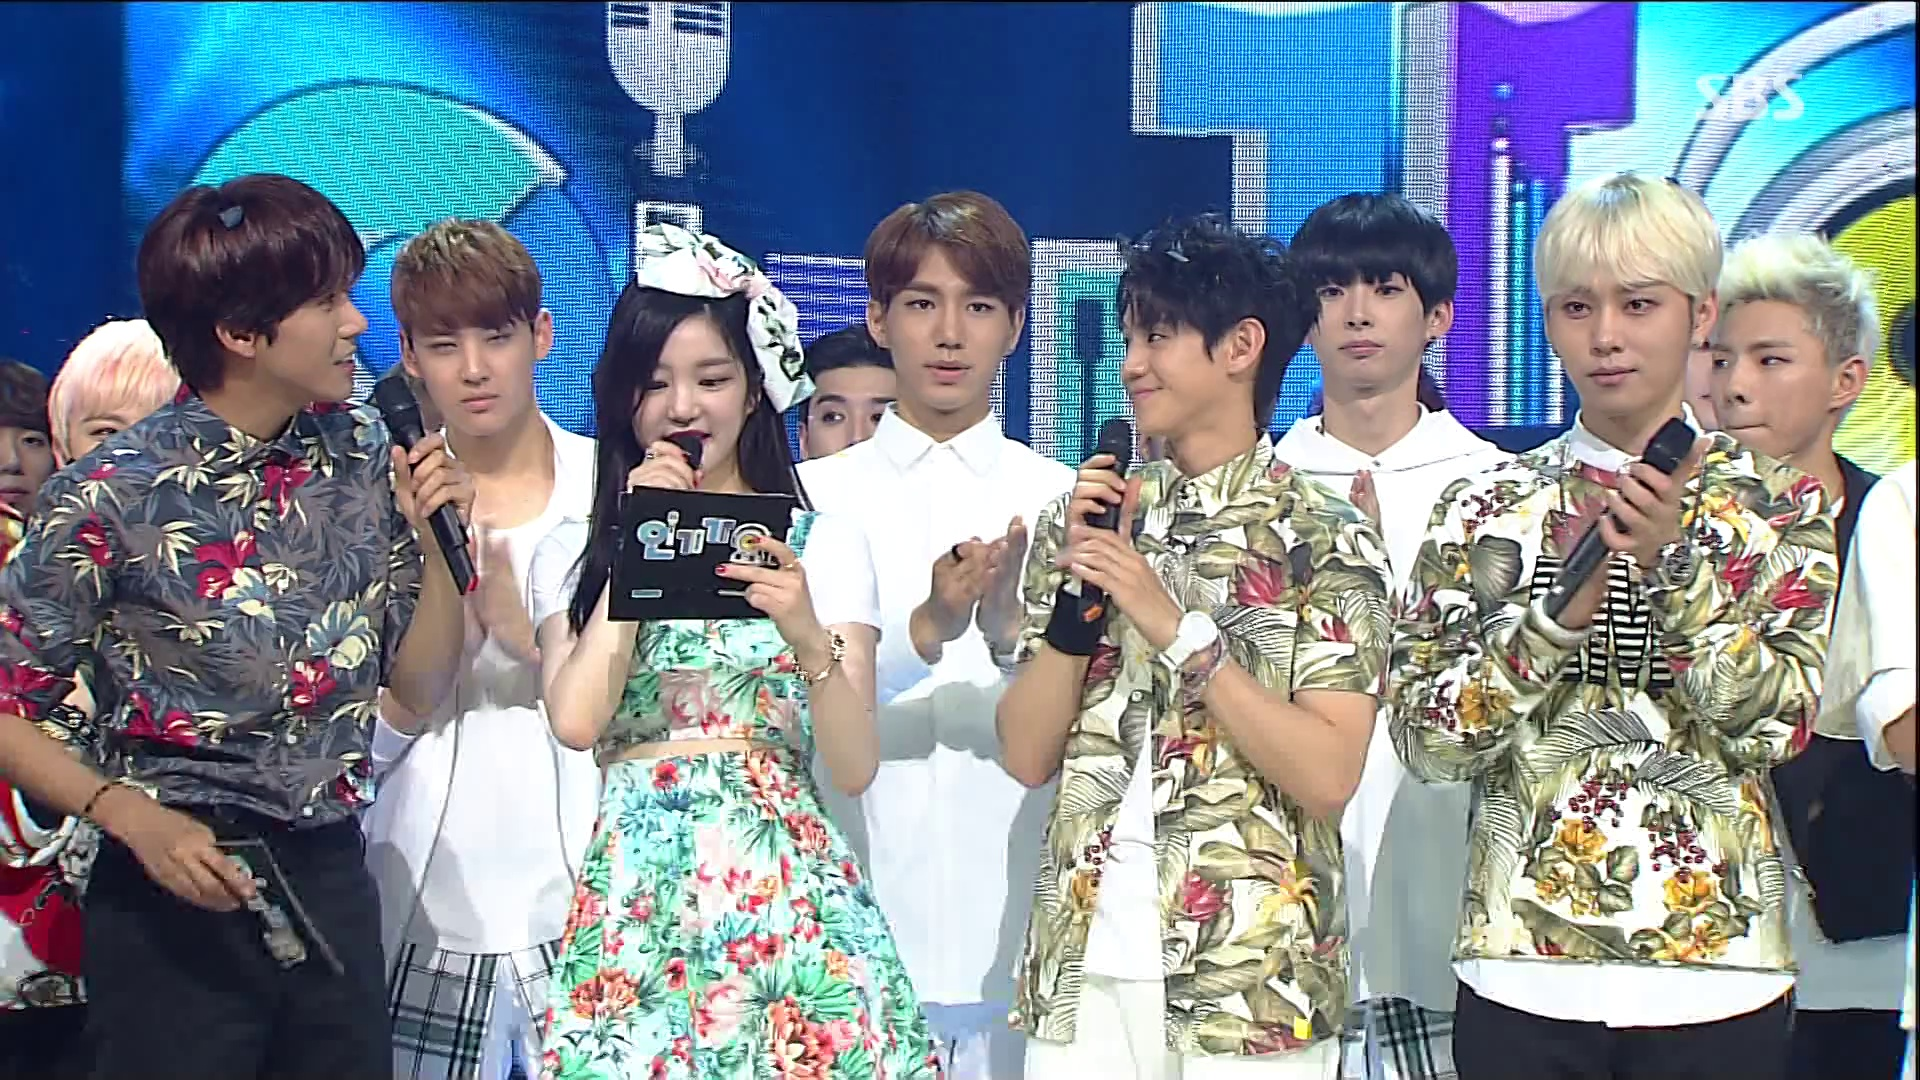 140706 Inkigayo MC cut + #1 result